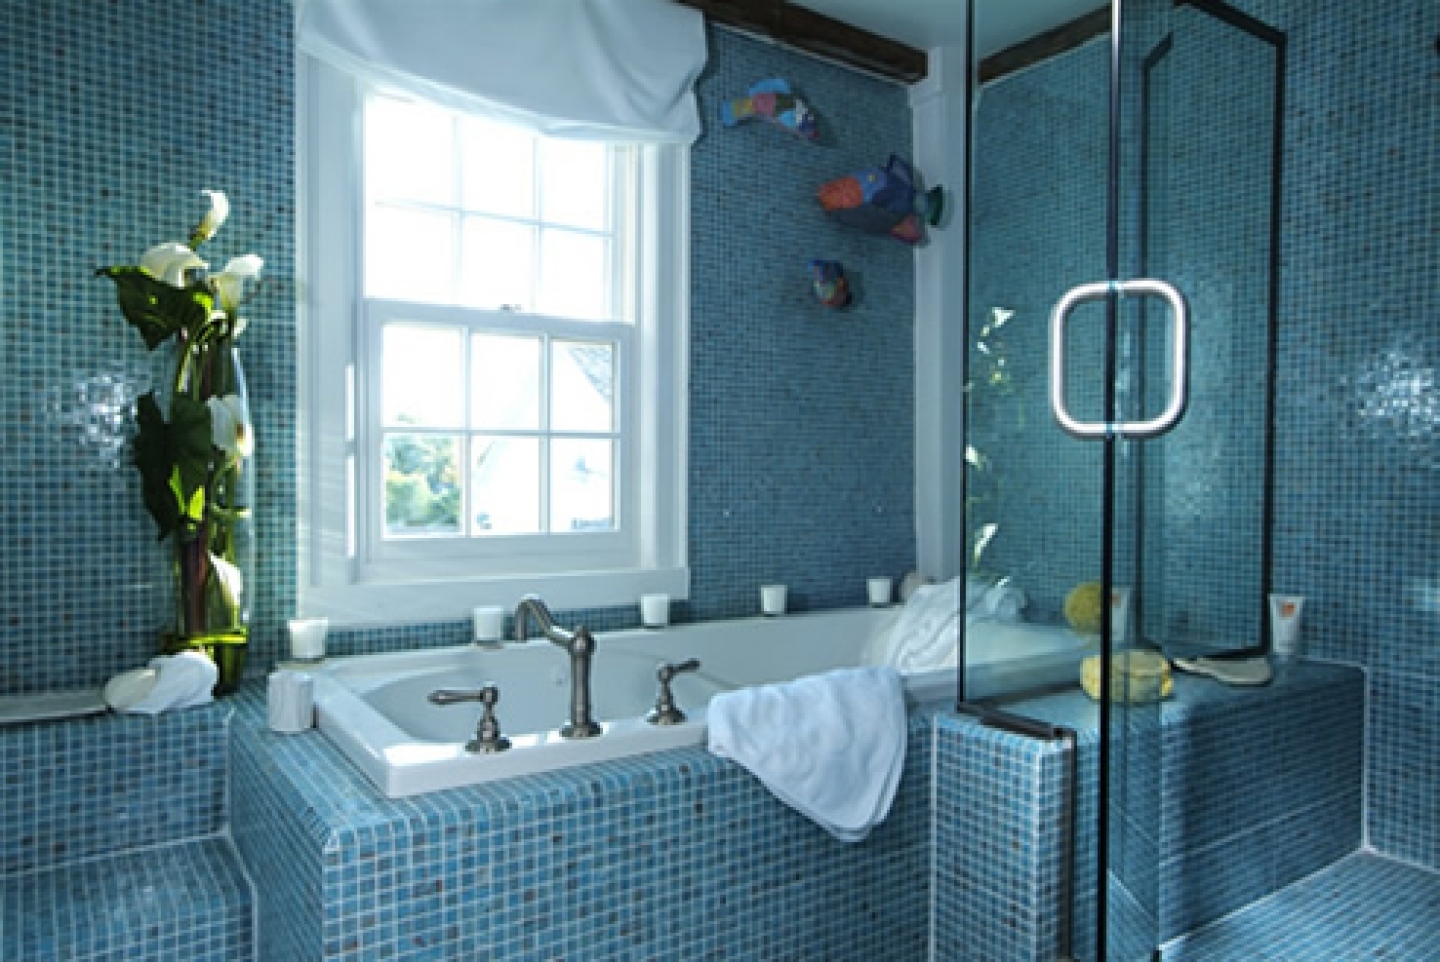 40 vintage blue bathroom tiles ideas and pictures for Nice bathroom ideas